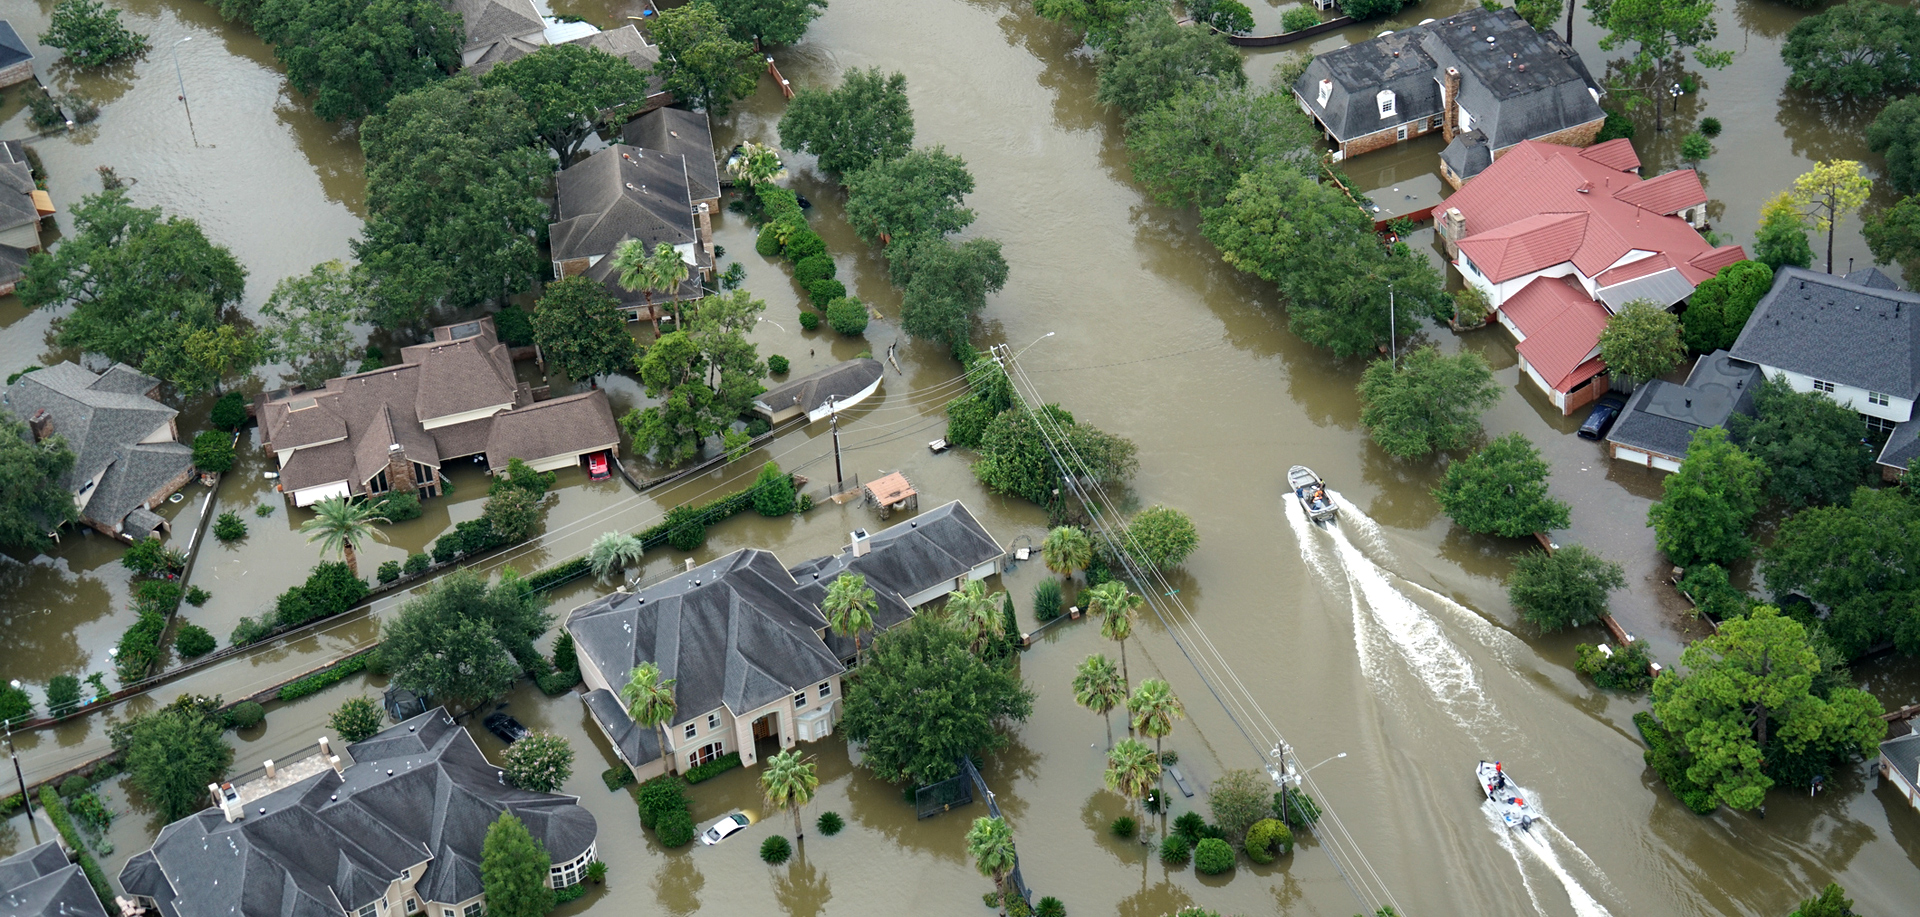 birds-eye view of flooded residential neighborhood